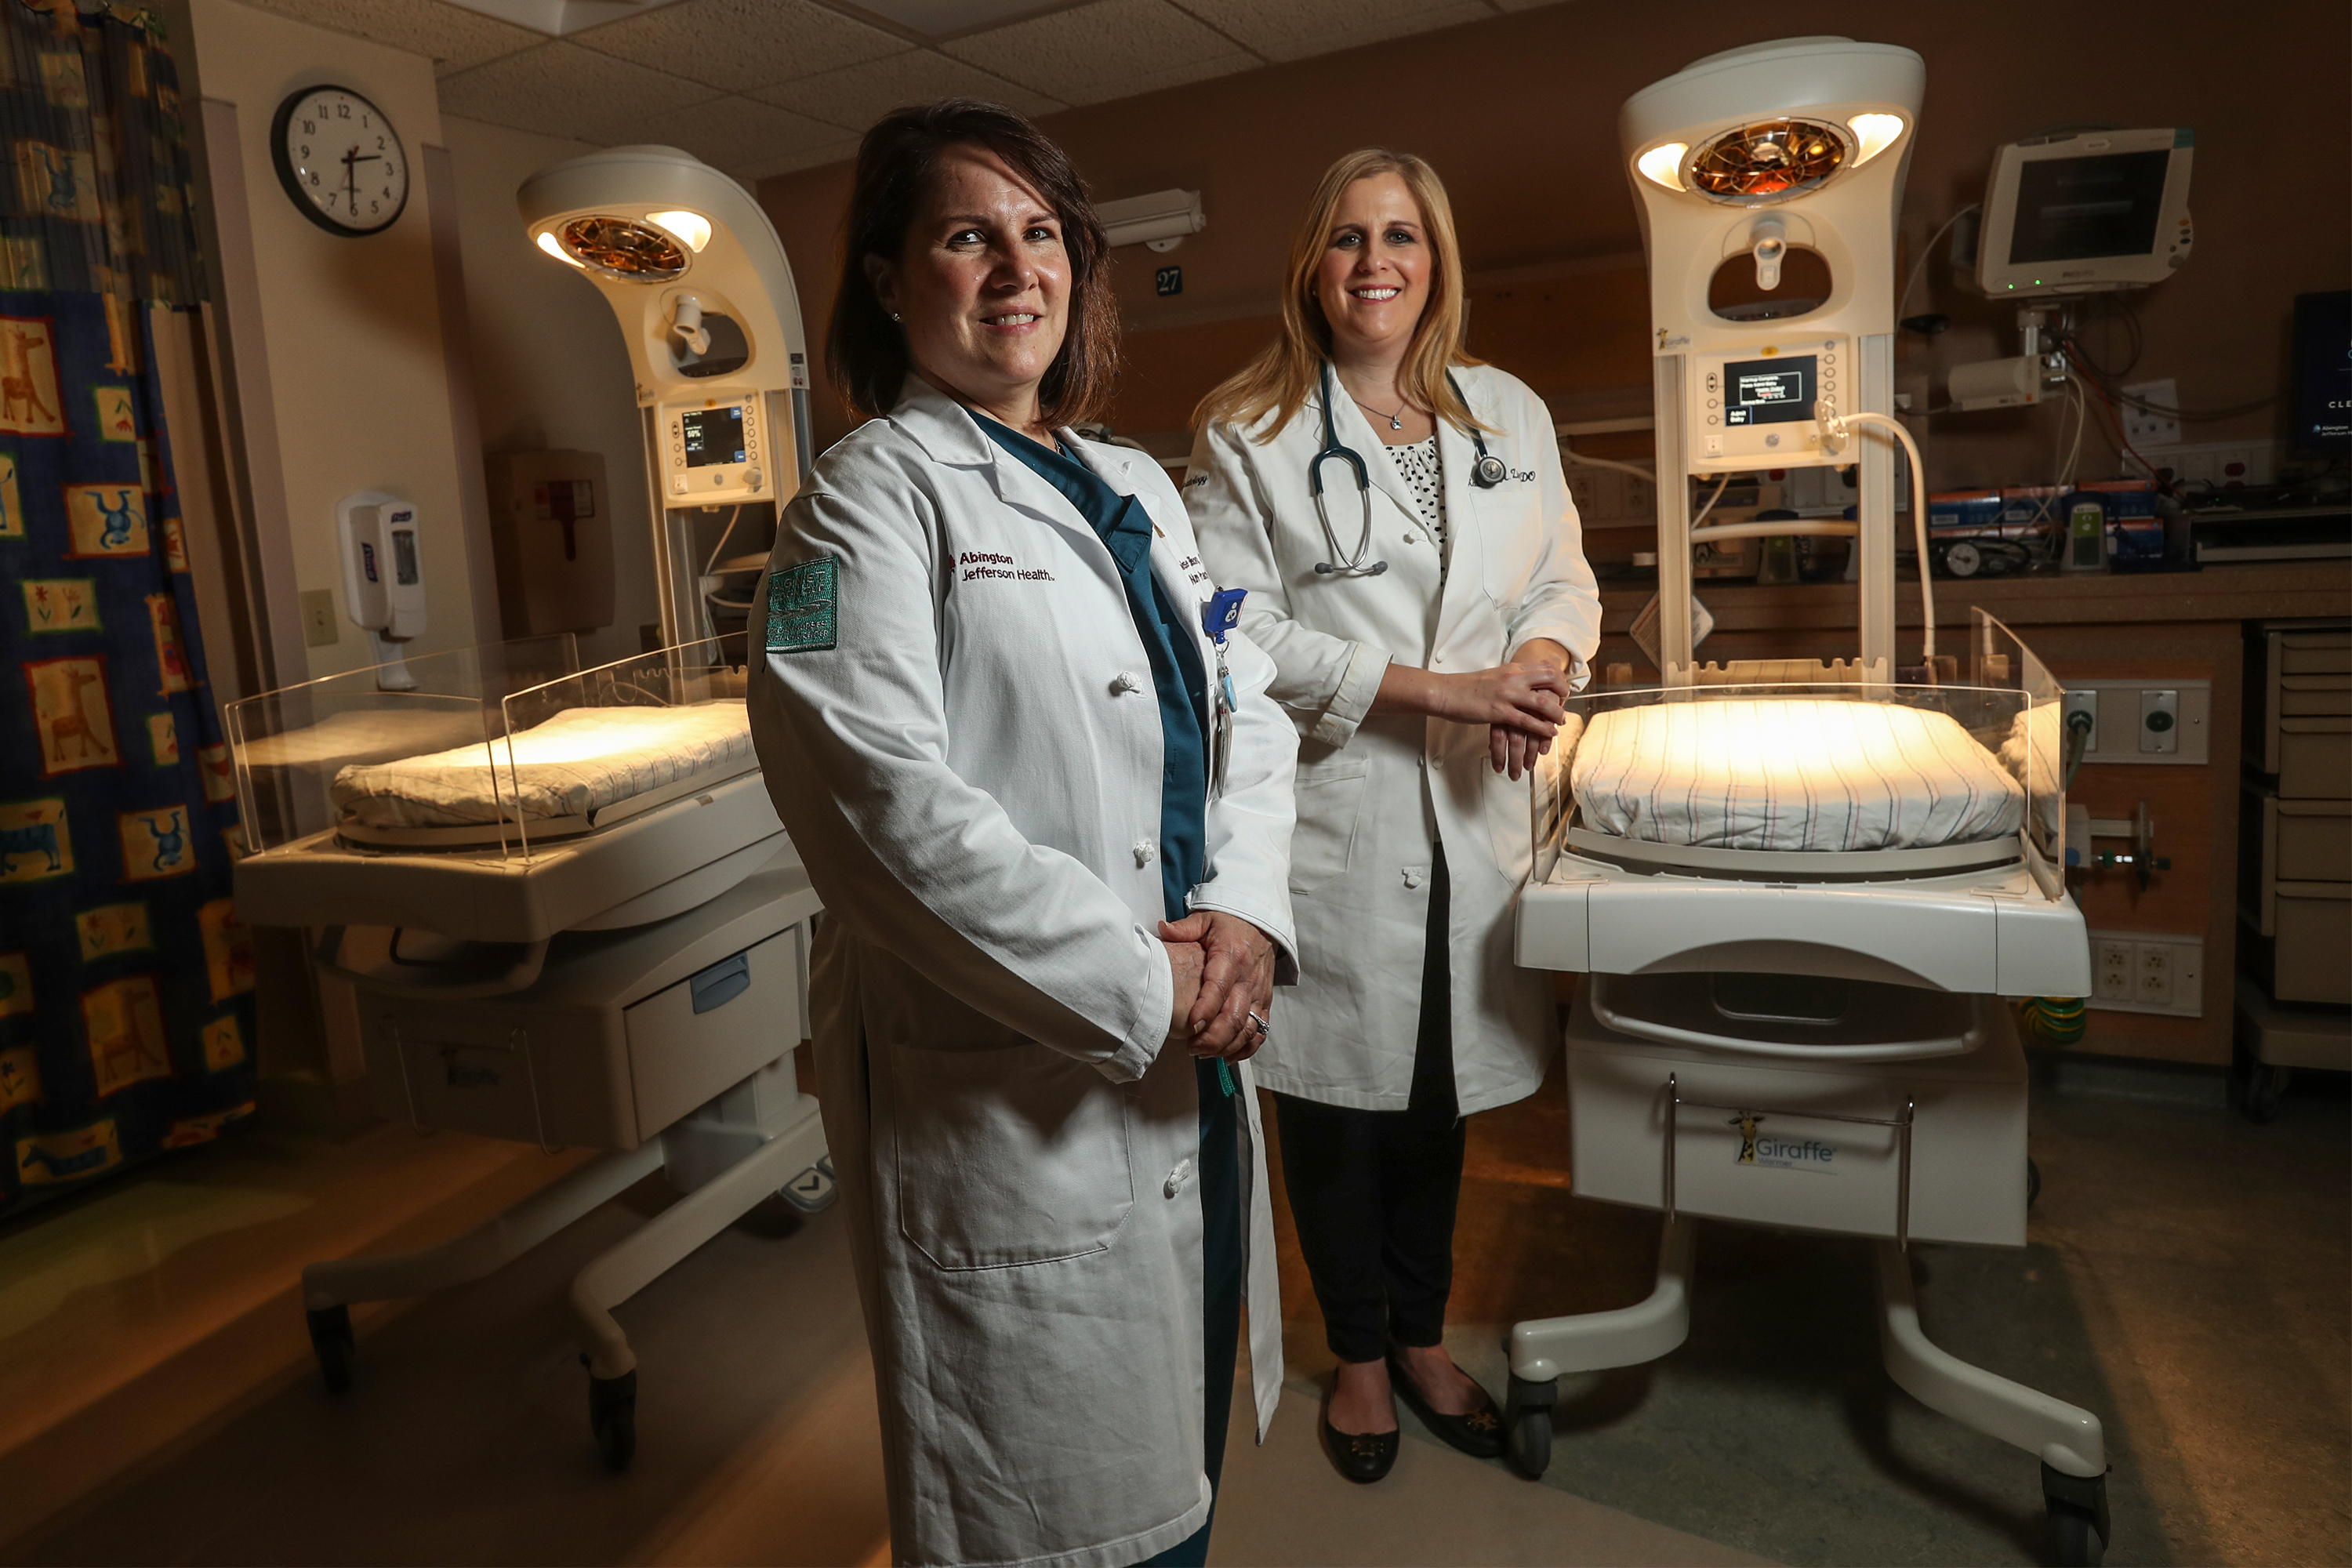 In the neonatal ICU, at Abington Hospital, nurse practitioner Denise Ellison left, and neonatologist Kathryn Ziegler watch over newborns that may have been exposed to drugs in utero.